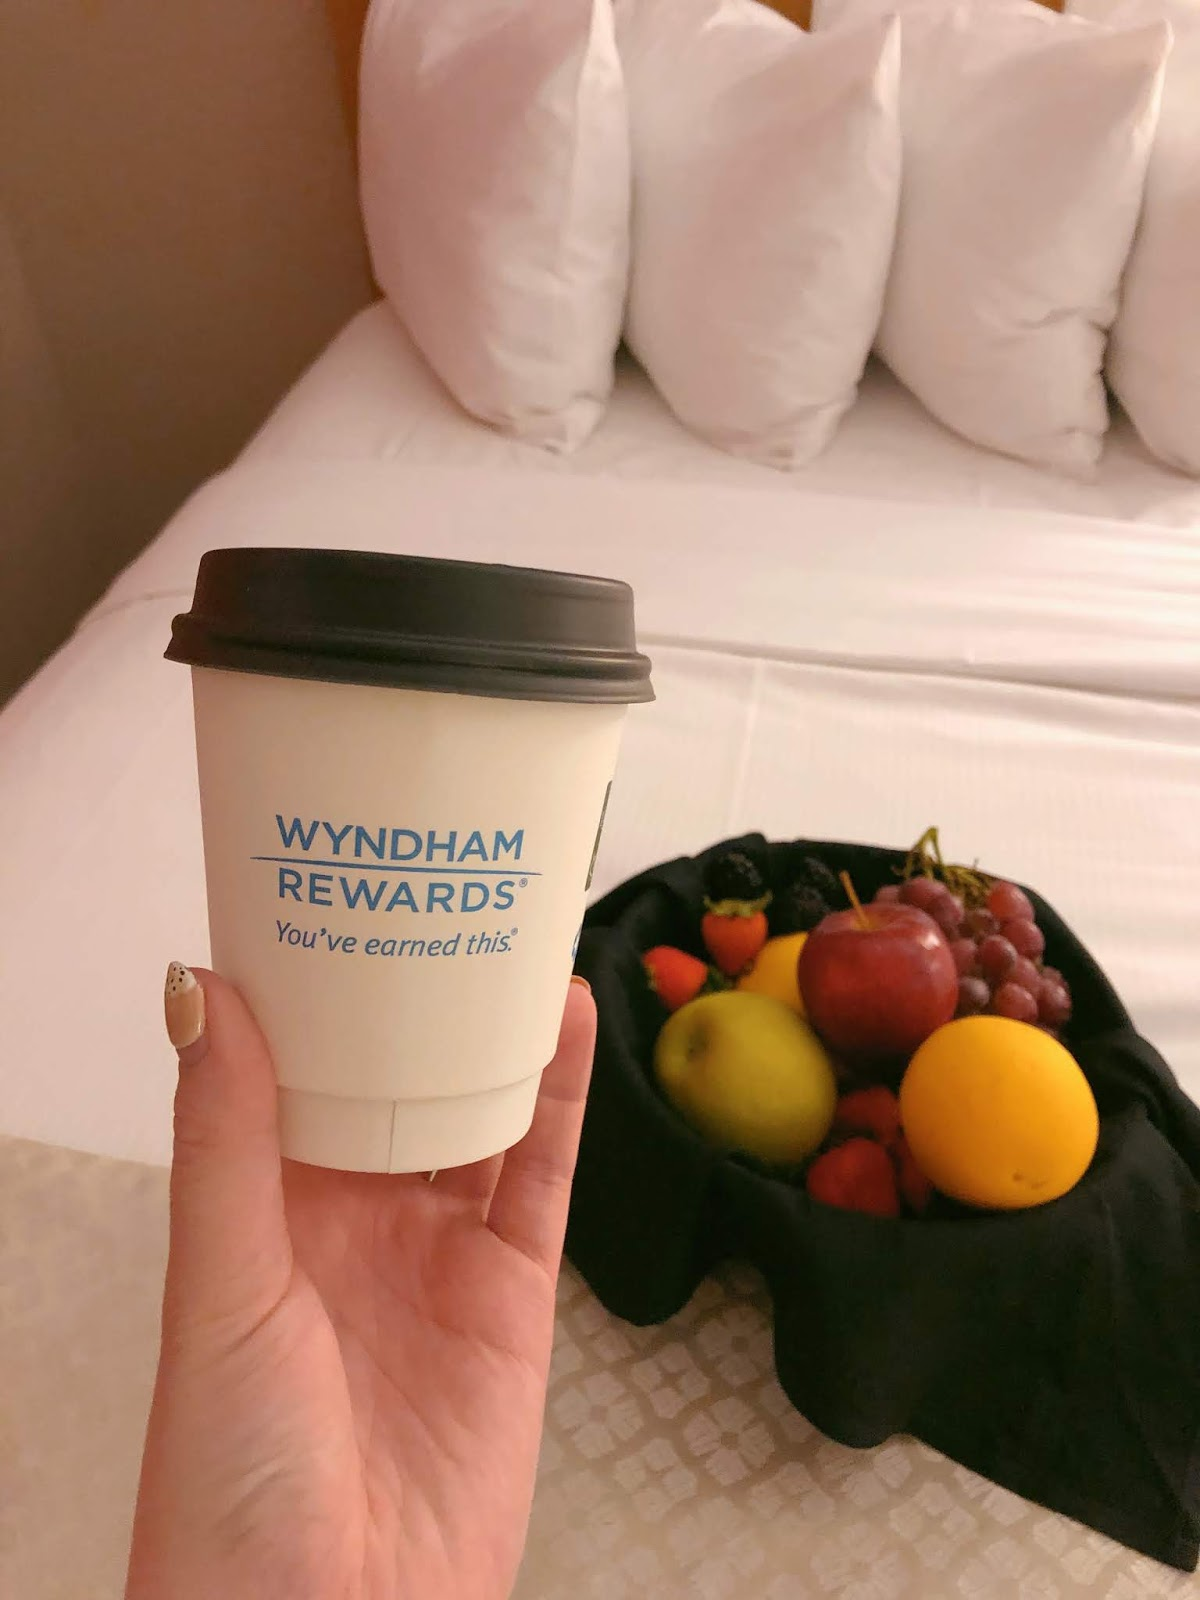 Hotel Review: Wyndham Orlando Resort International Drive. Affordable by Amanda, Travel Blogger living in Tampa.